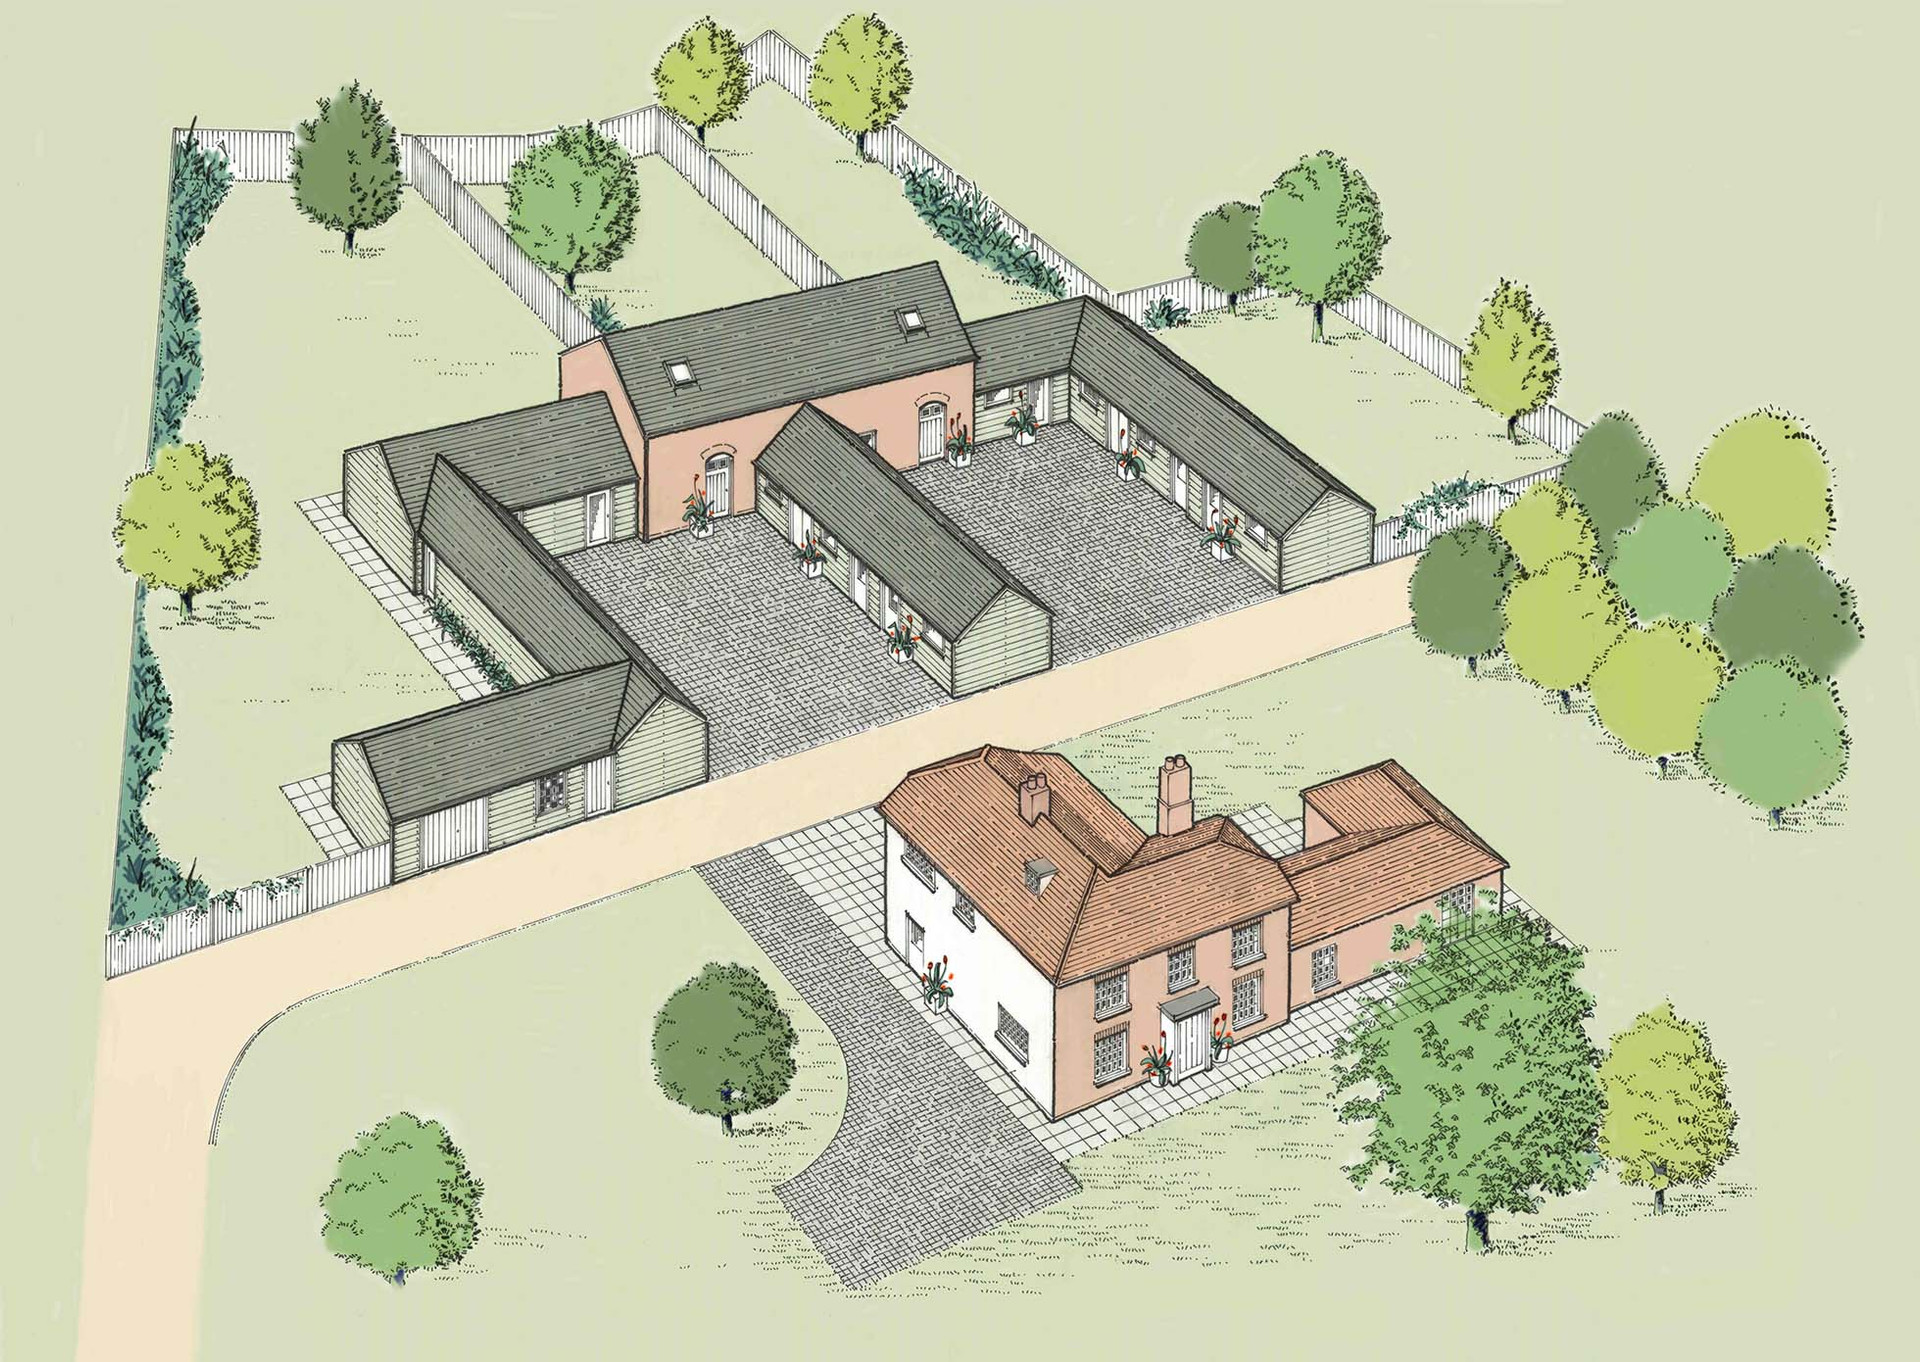 Farmhouse conversion and restoration illustration